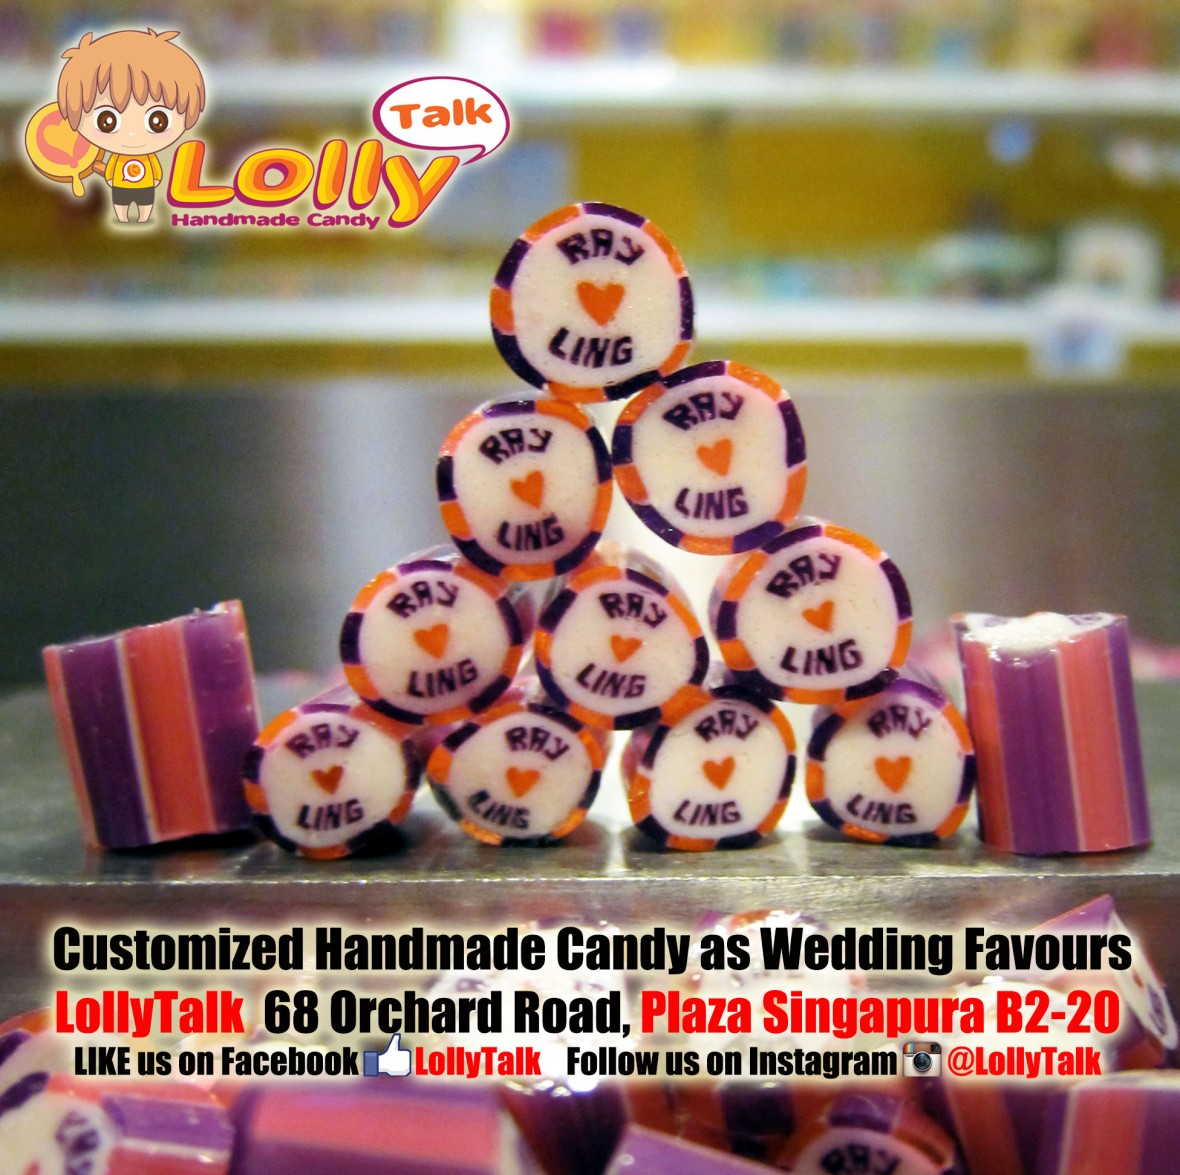 Customized Wedding Candy as wedding favors